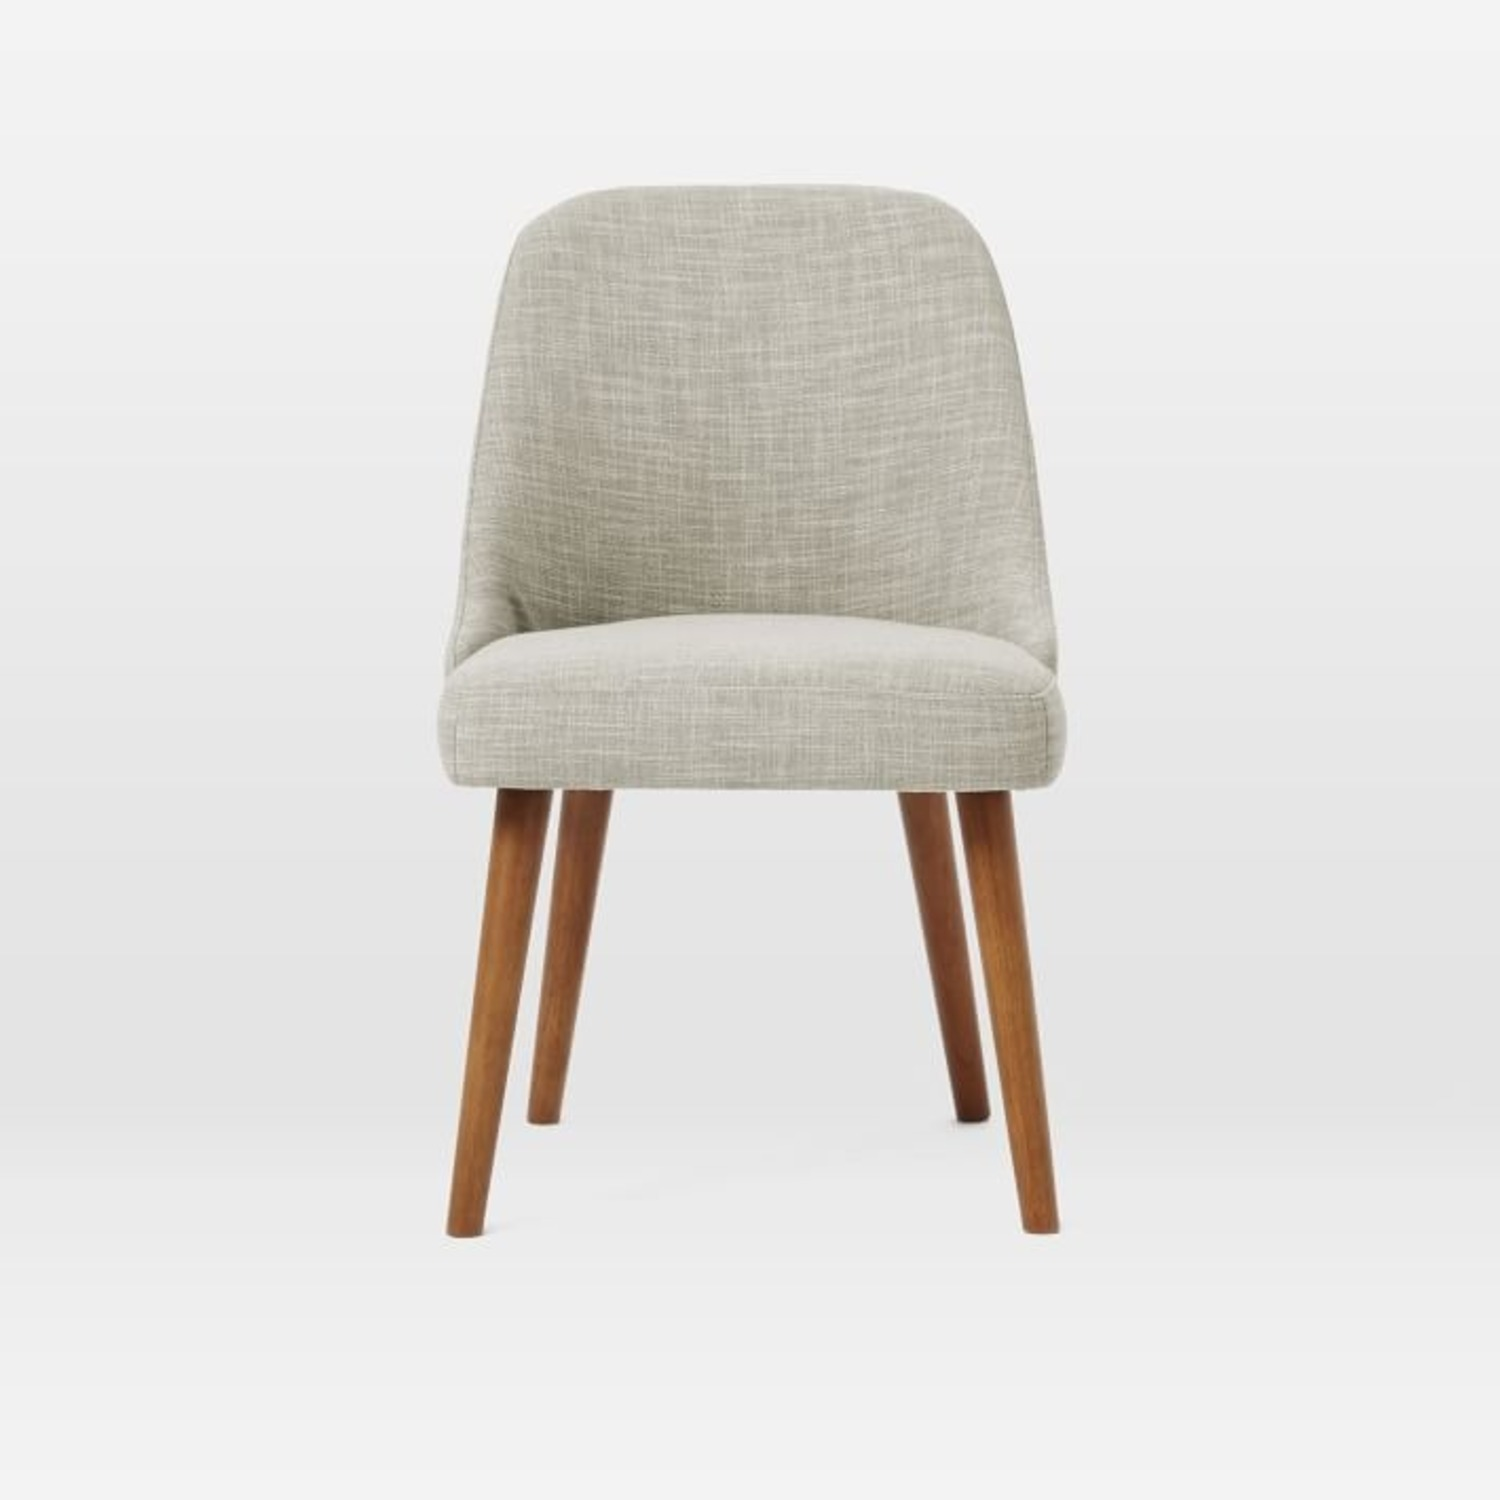 West Elm Mid-Century Upholstered Dining Chair - image-2